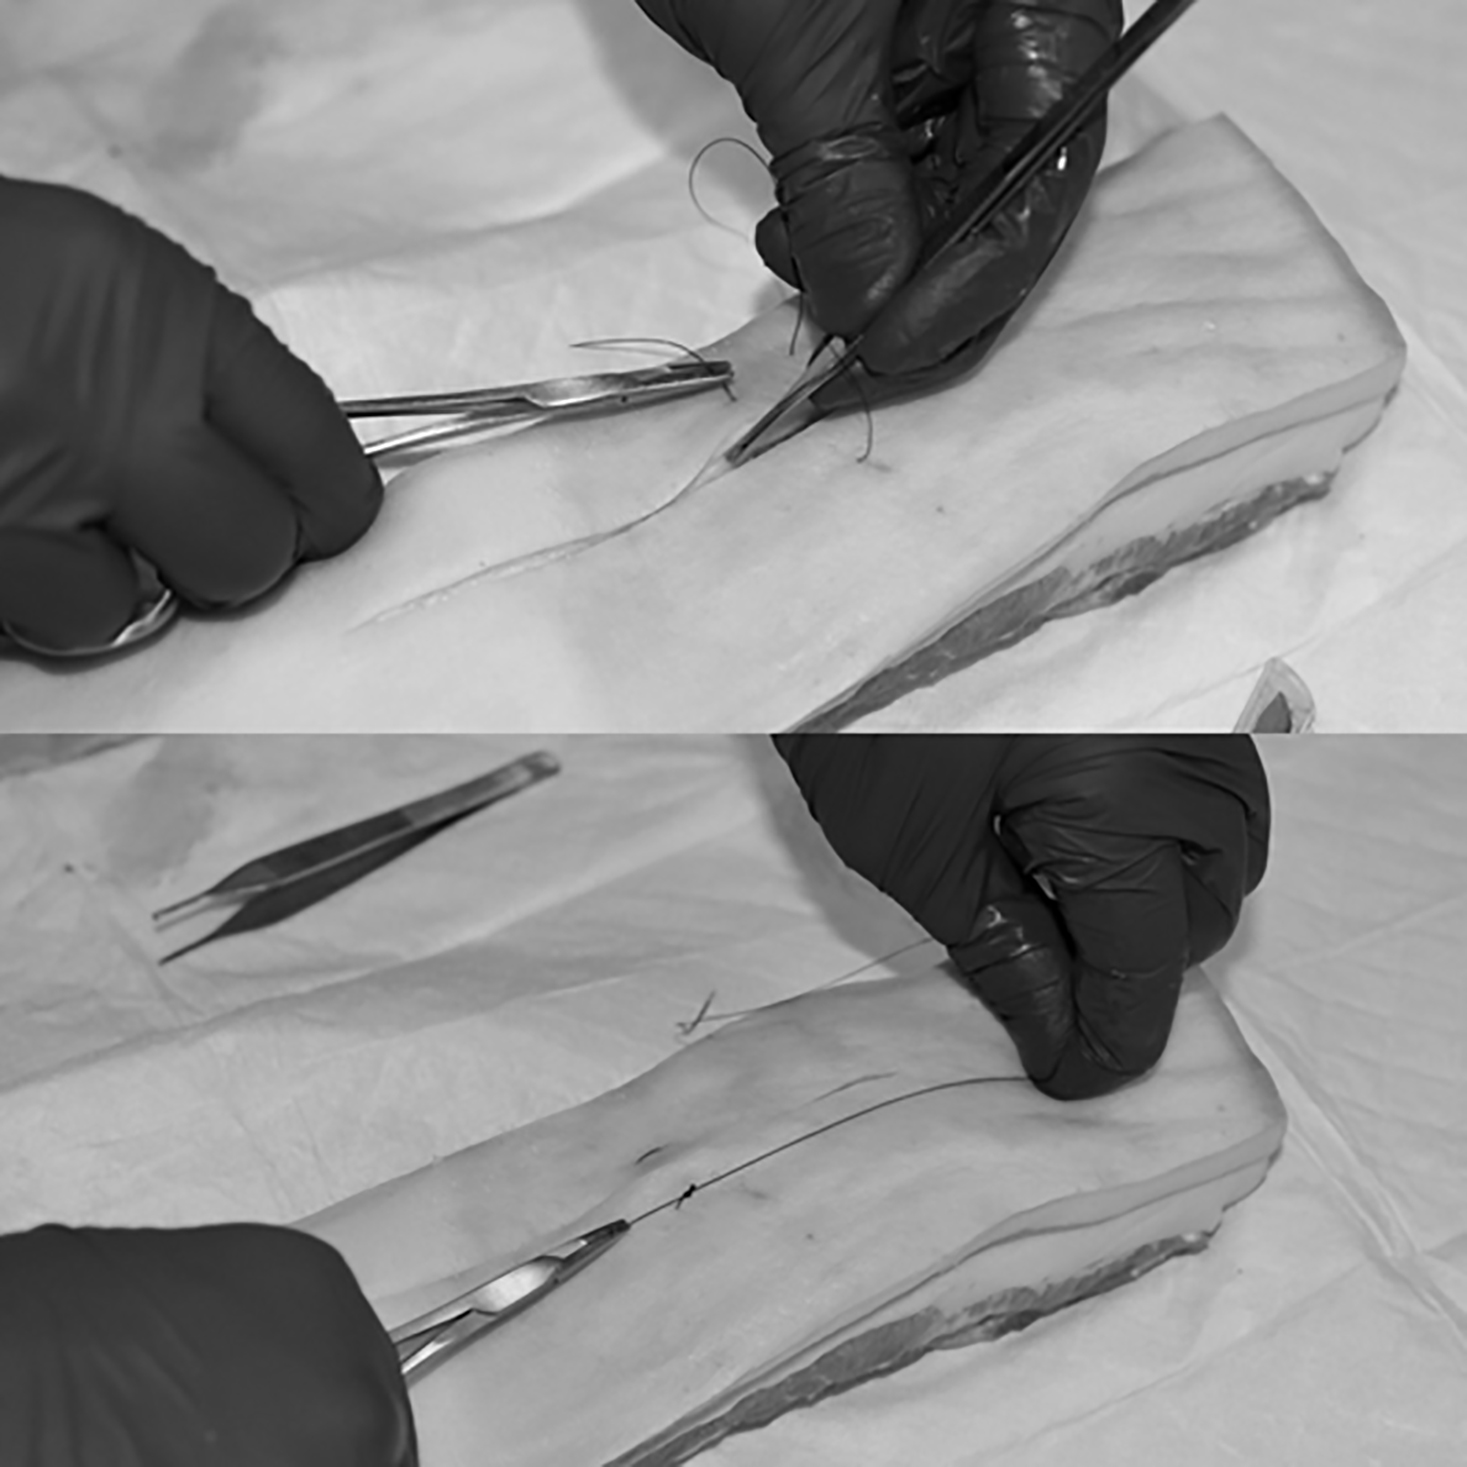 Placement of horizontal mattress sutures